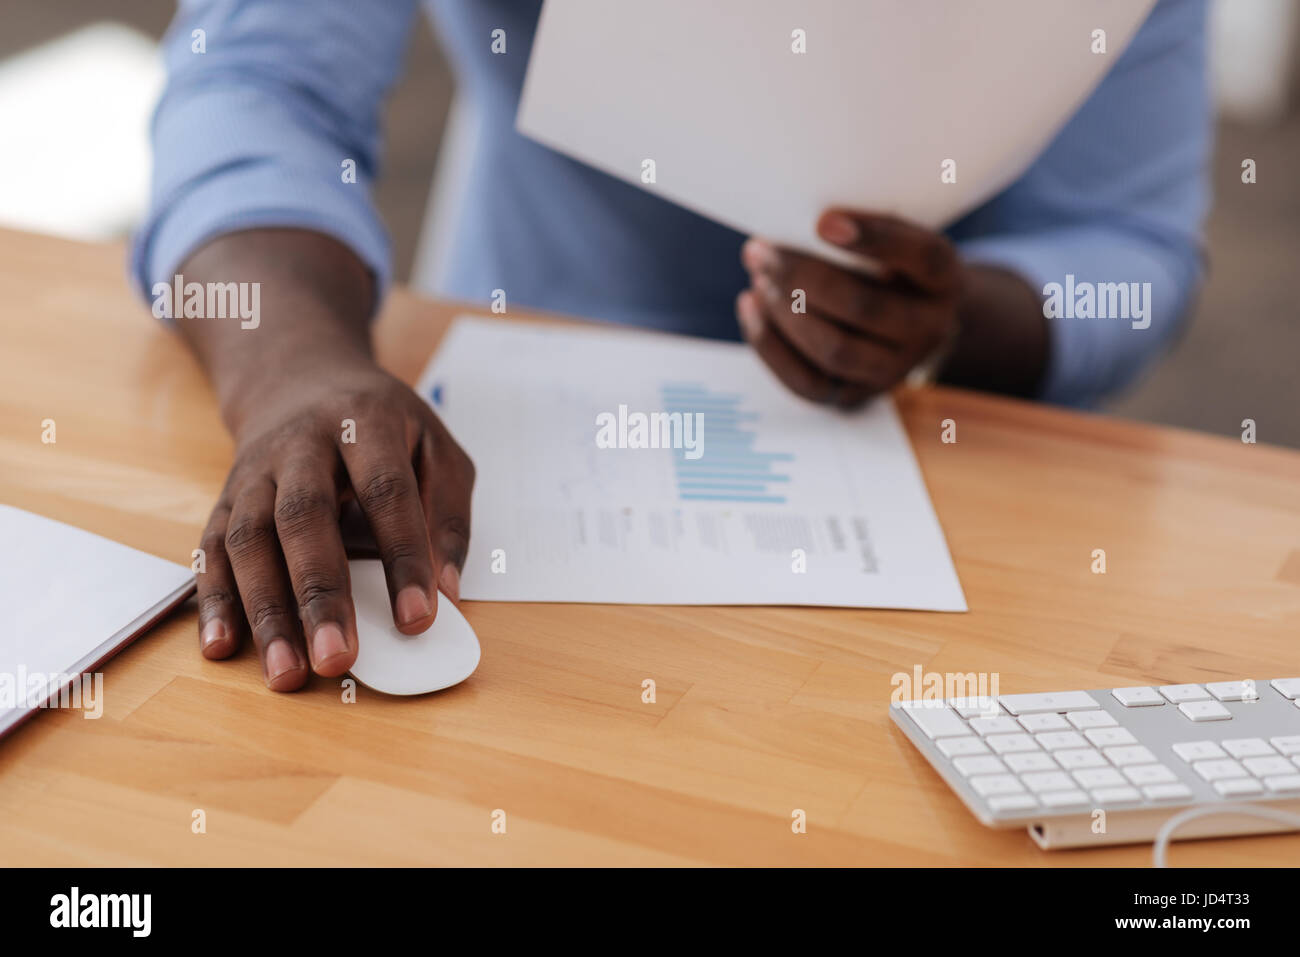 Nice Afro american man using a computer mouse - Stock Image